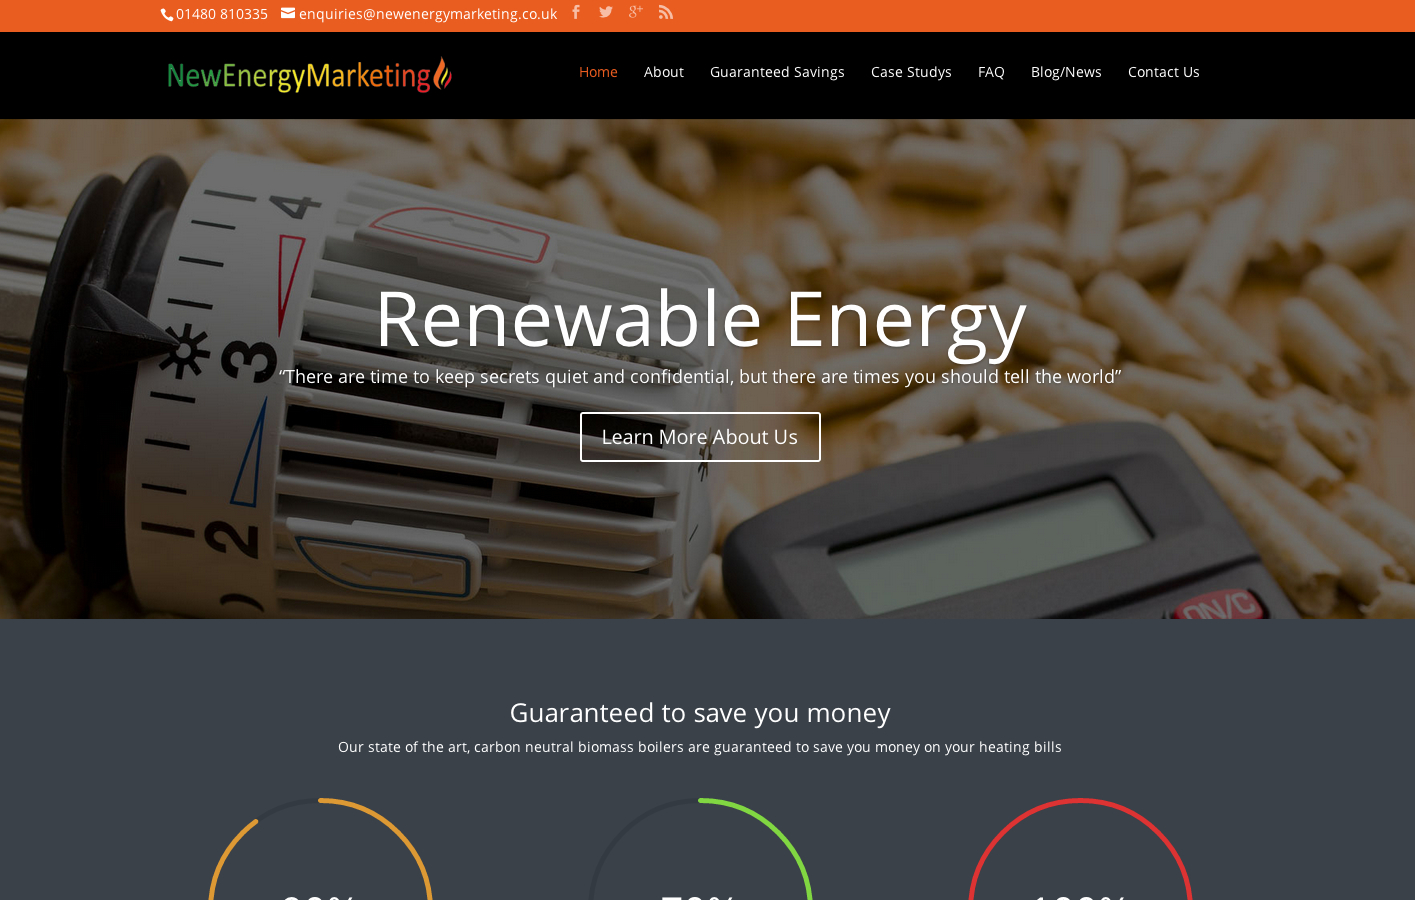 newenergy1 - Website Redesign & Revamps